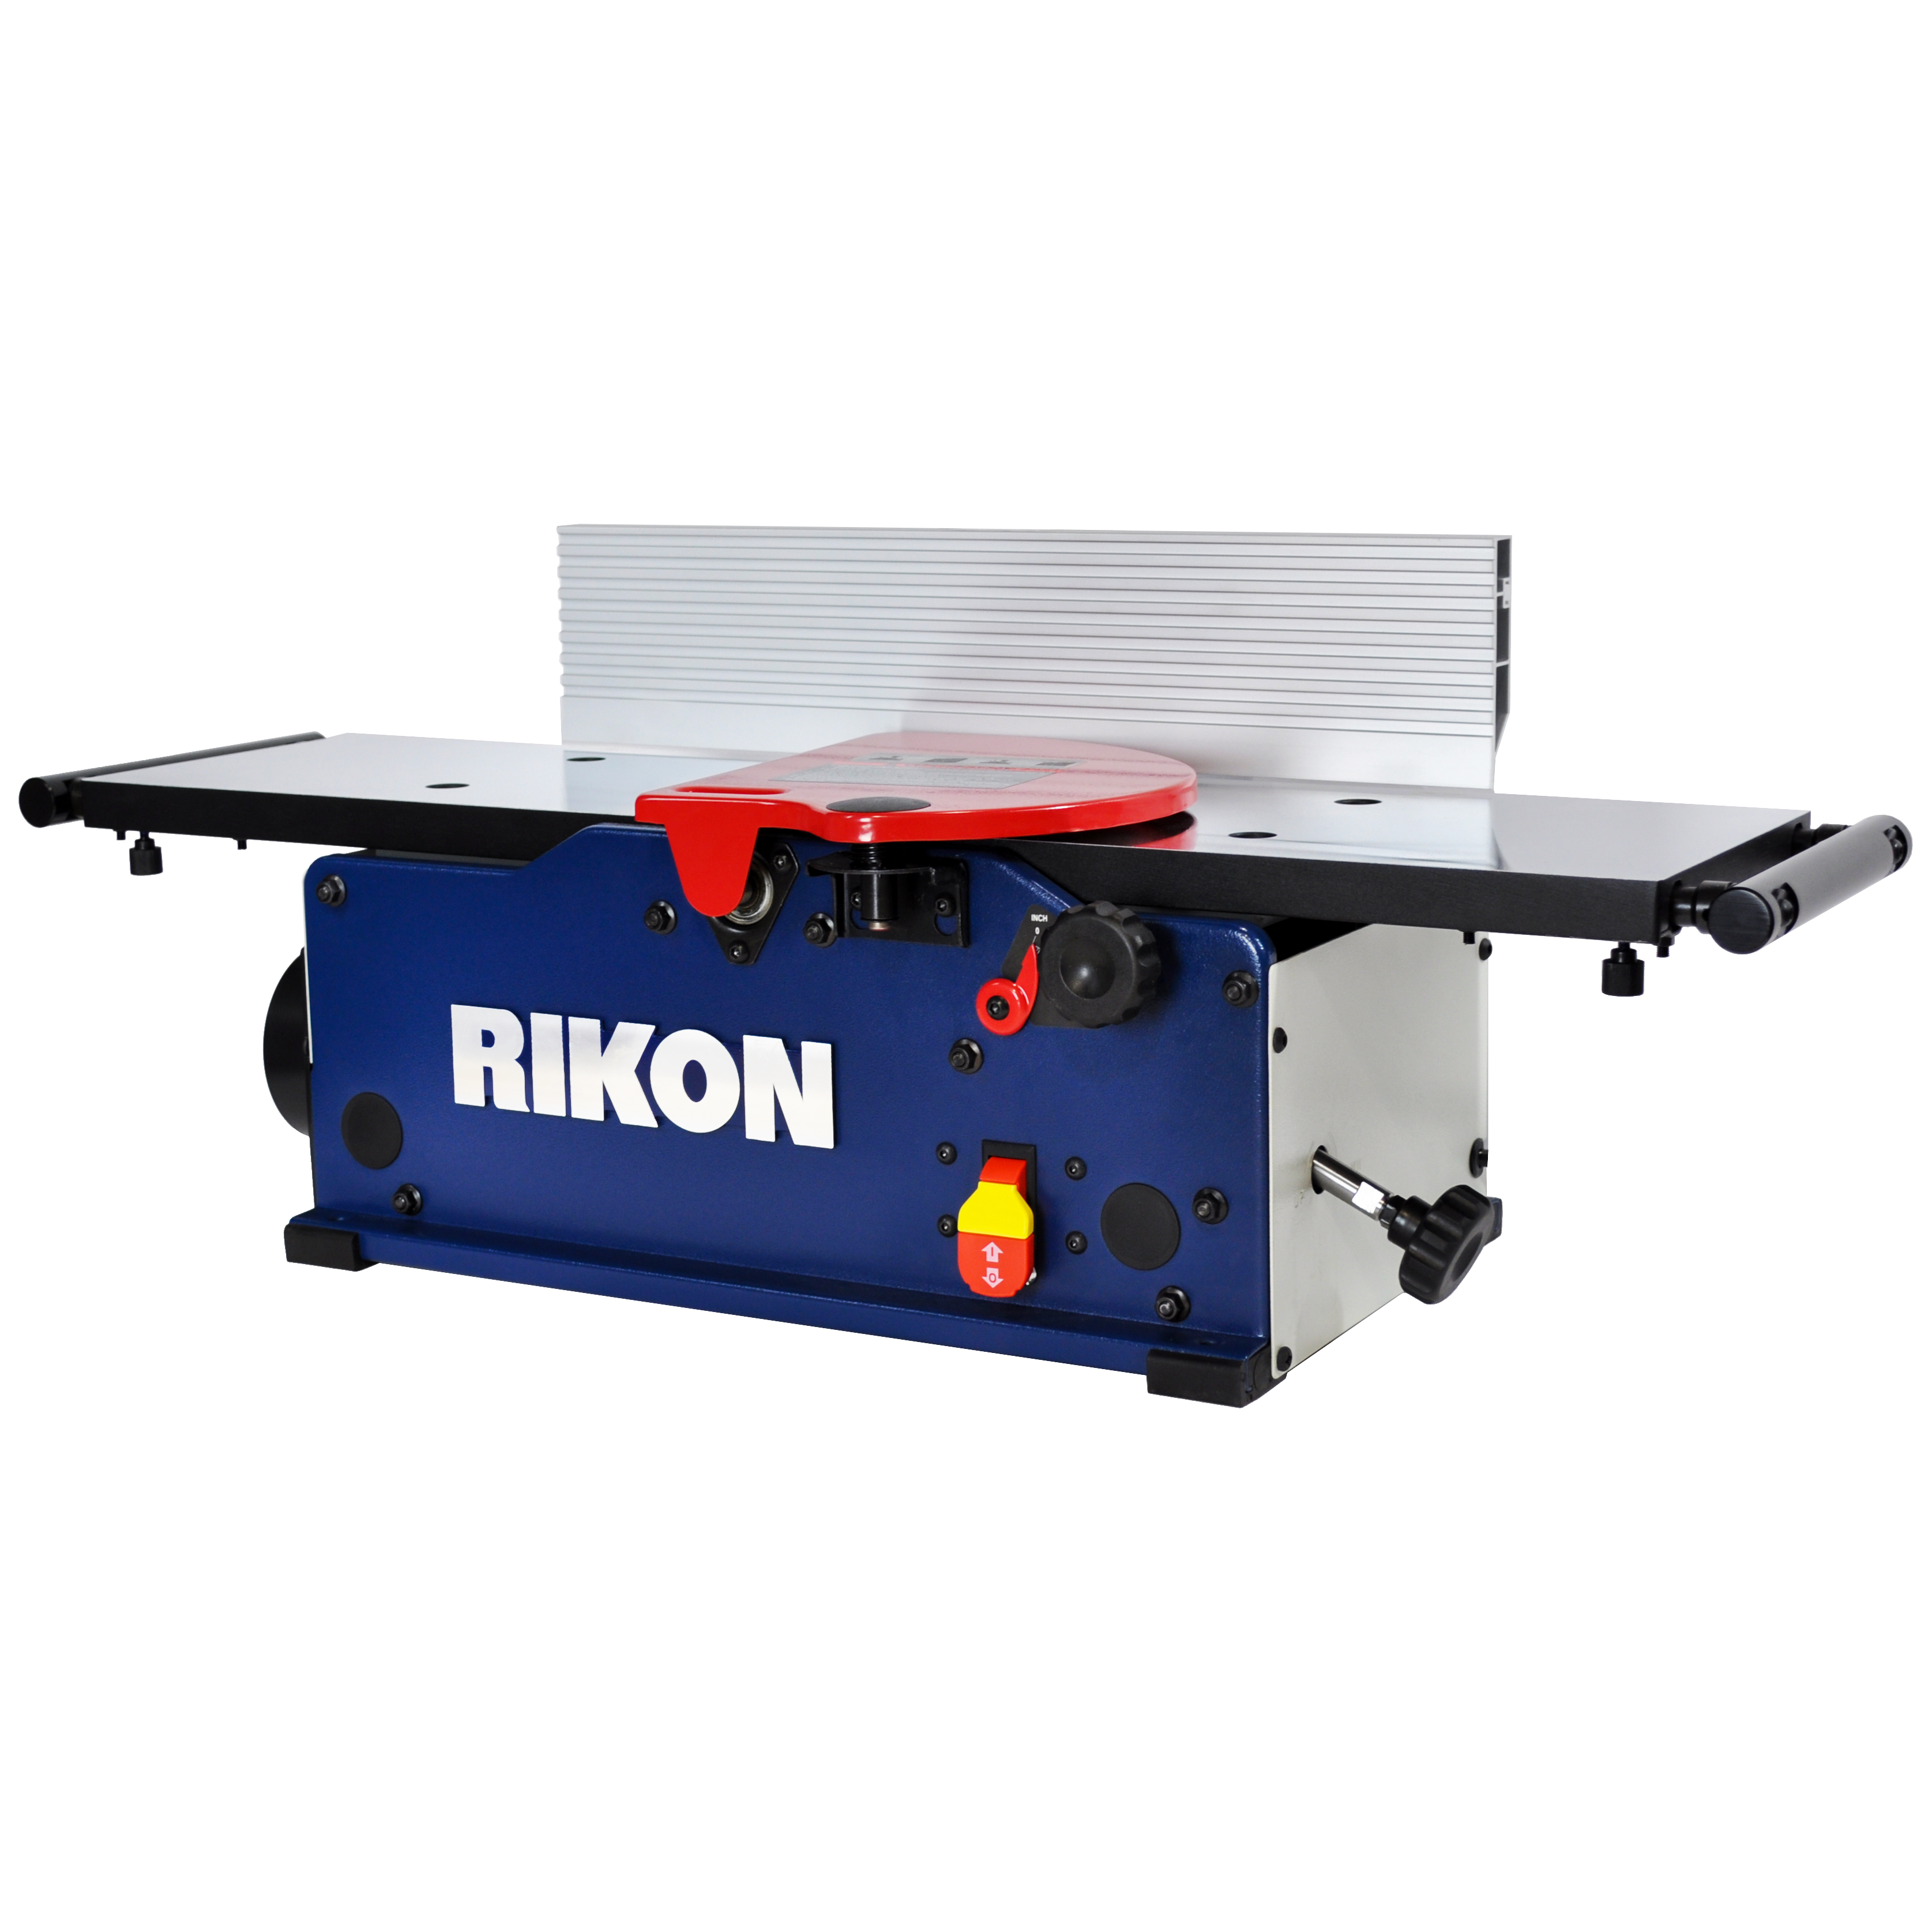 Model 20 800h 8 Helical Style Benchtop Jointer Rikon Power Tools